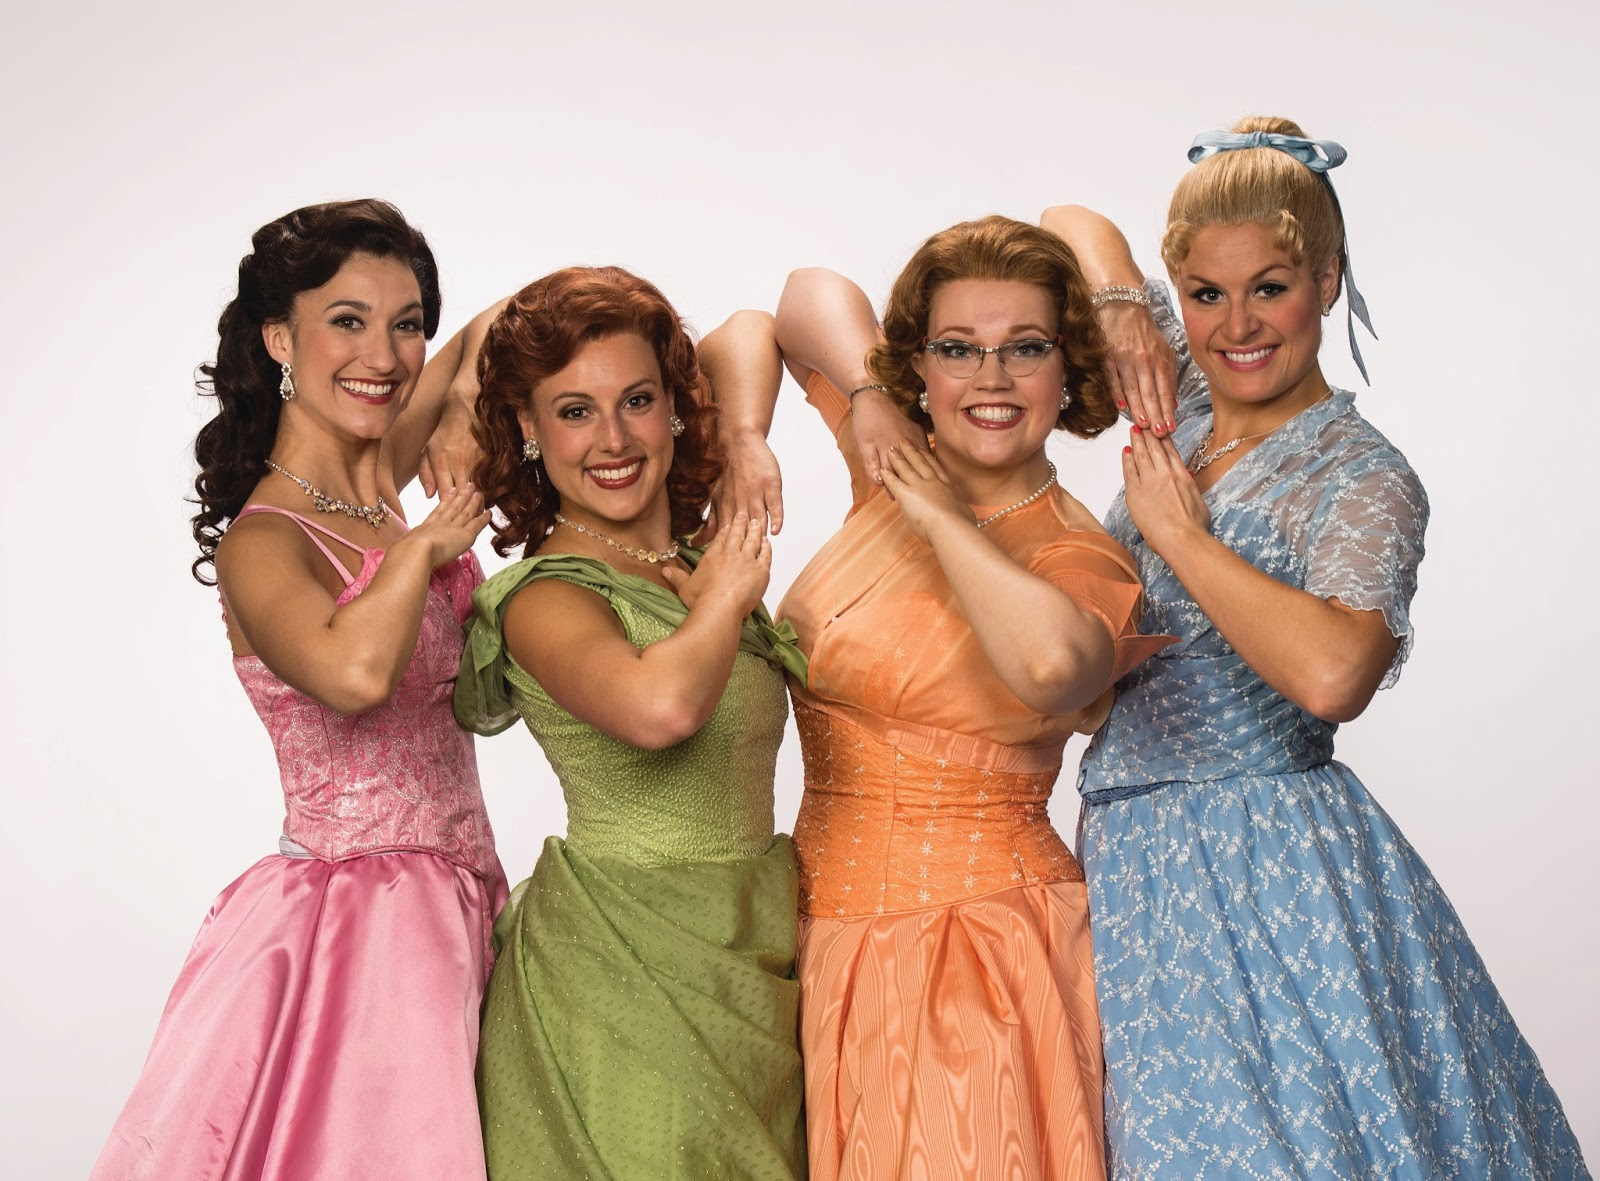 Bednarczuk (Cindy Lou), Storrs (Betty Jean),Cook (Missy), and Cozzens (Suzy)